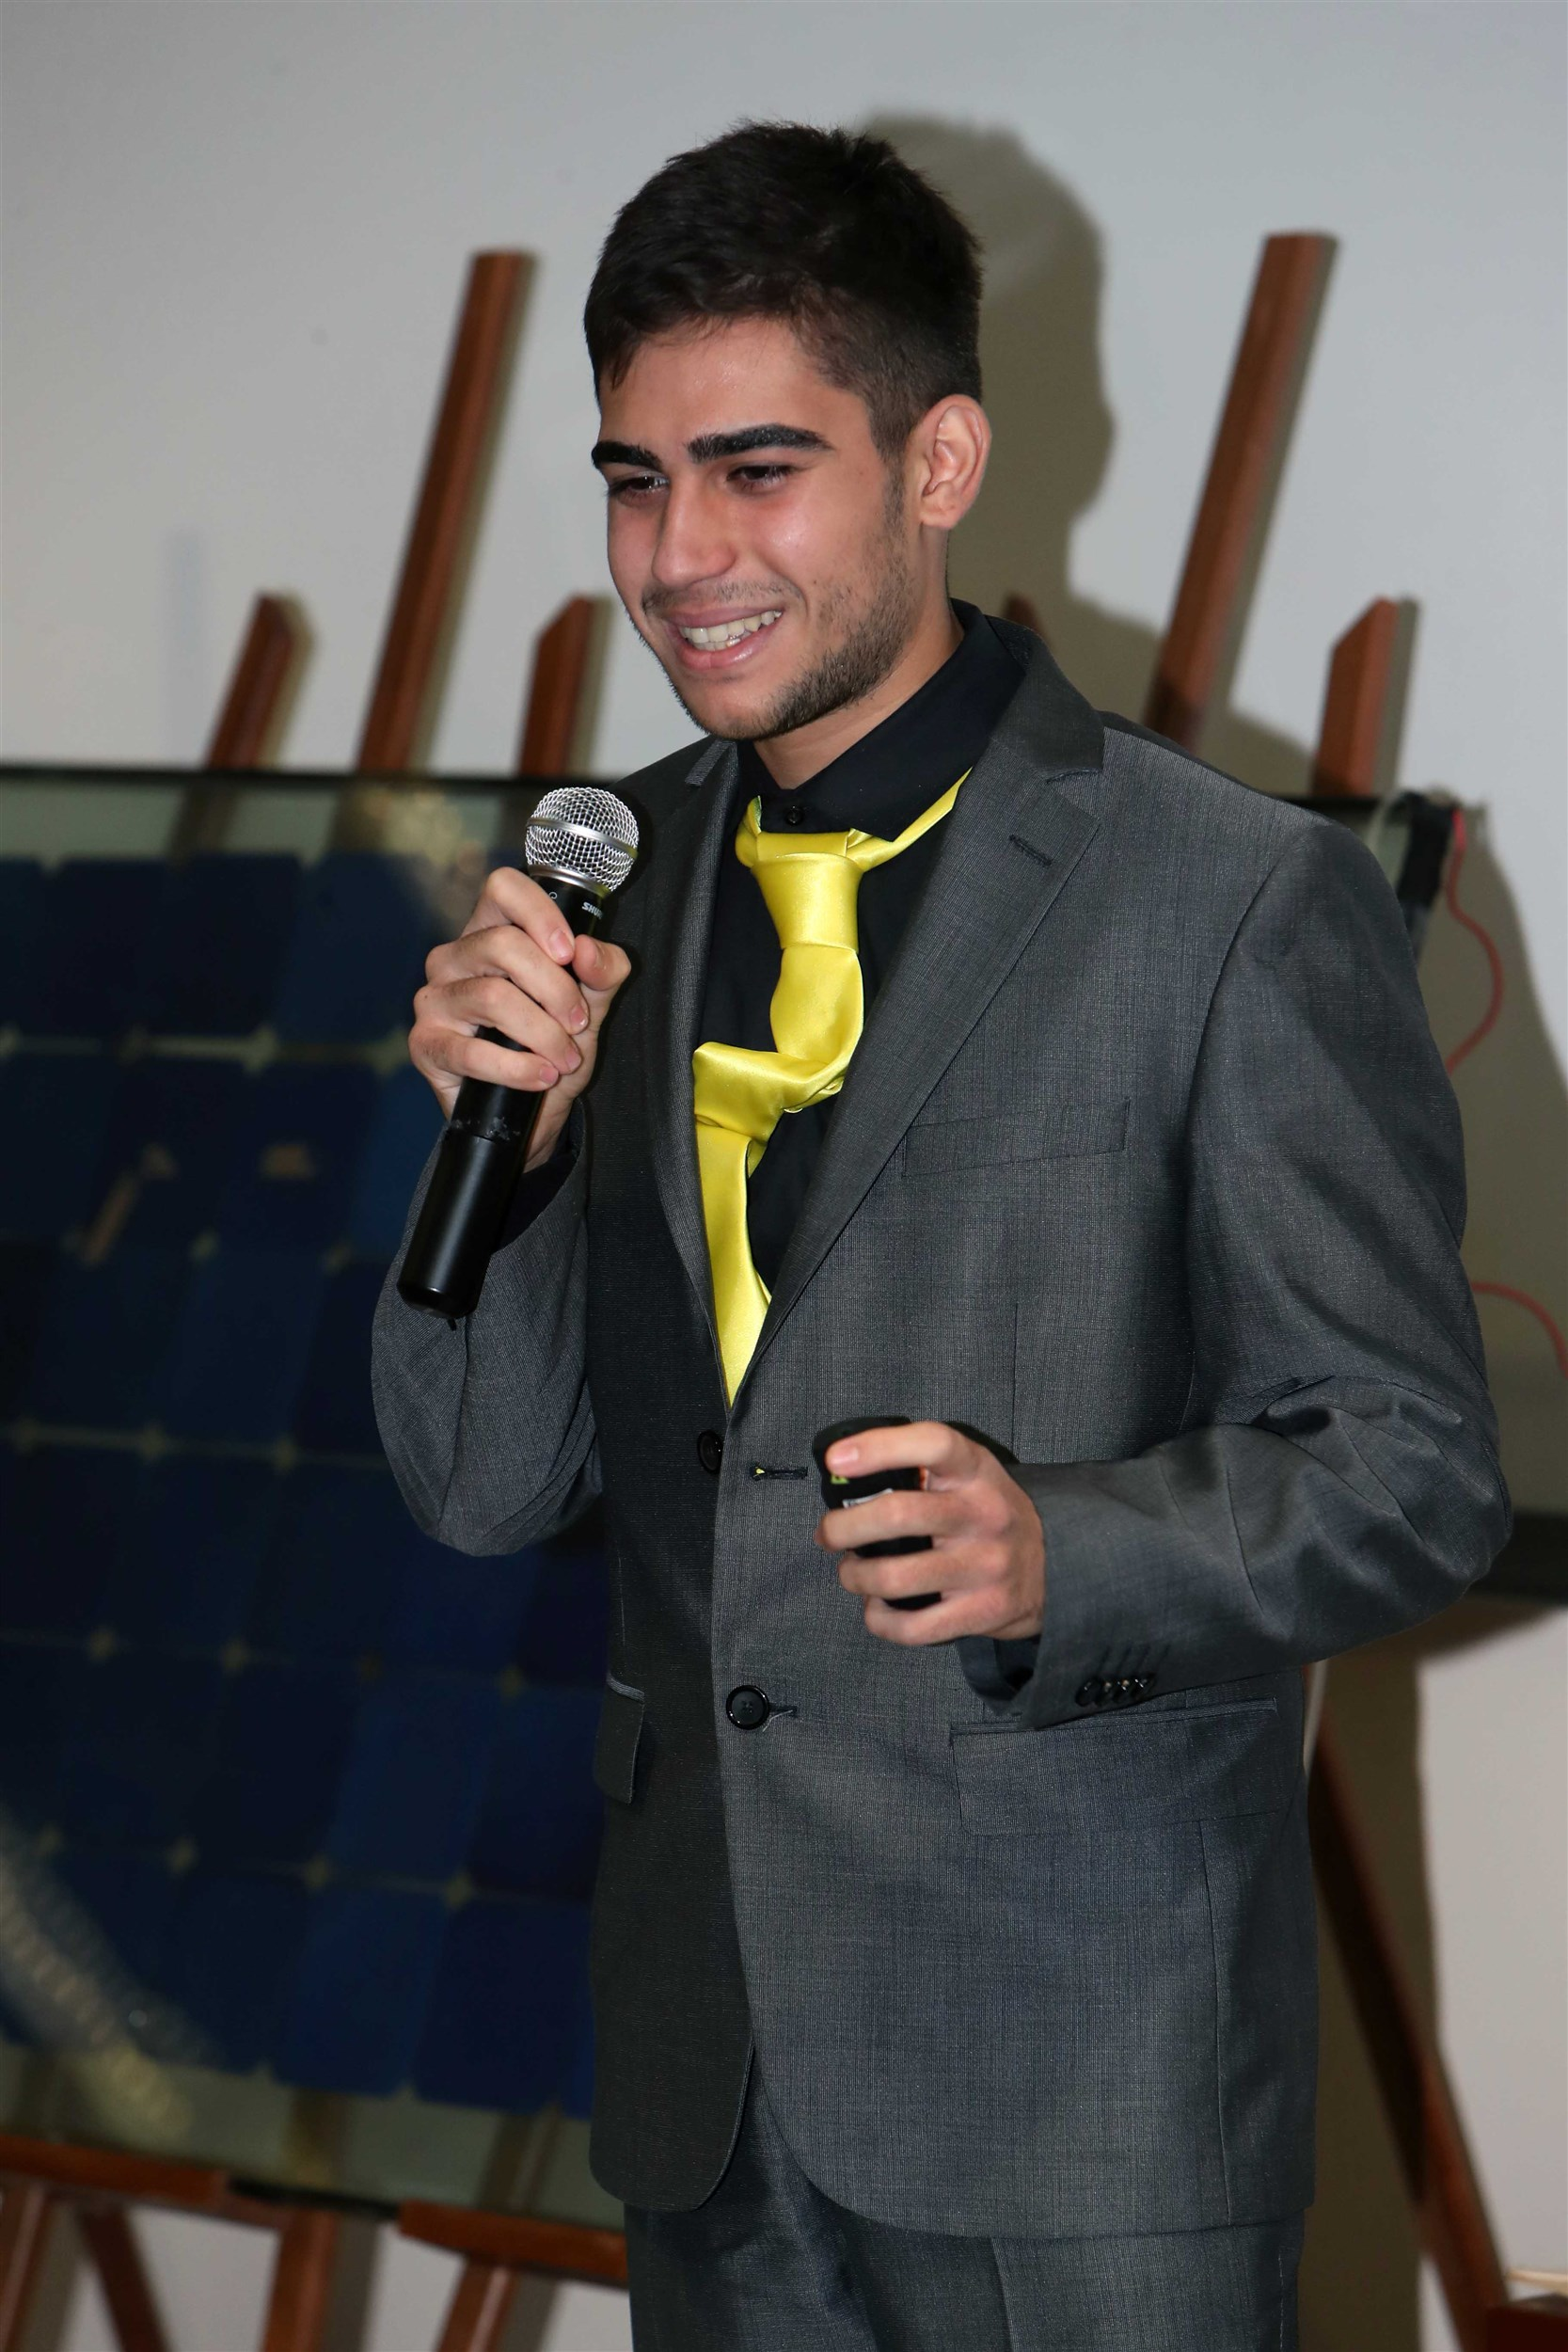 one of the participating students pitching his idea for the jury.